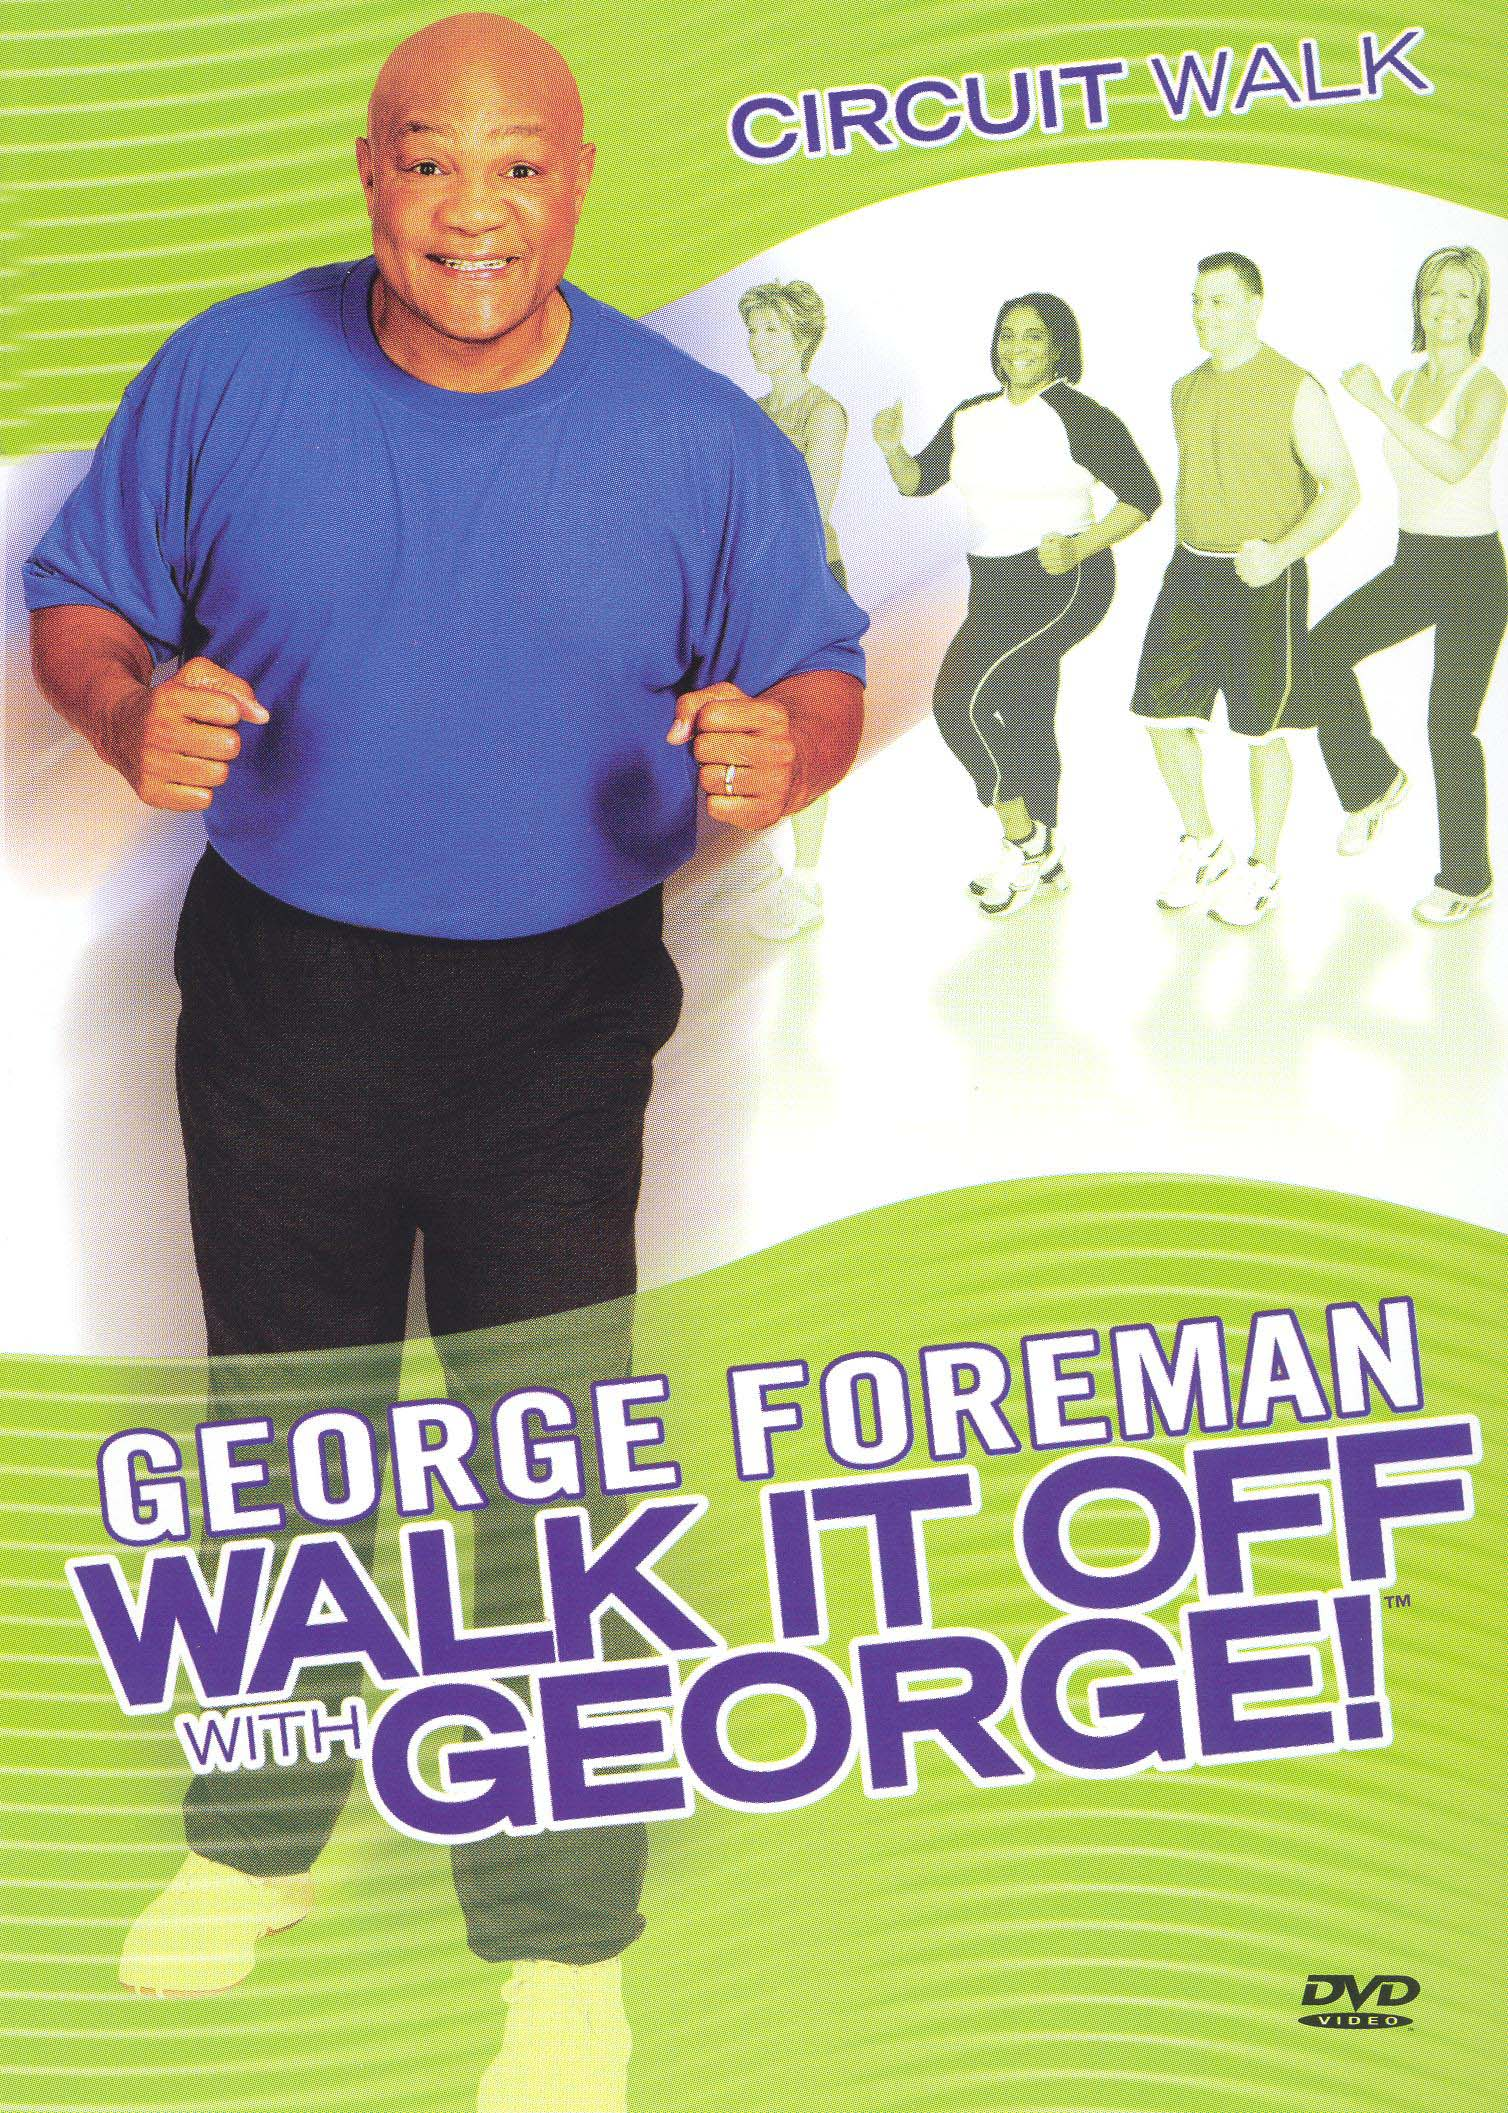 George Foreman: Walk it Off With George - Circuit Walk